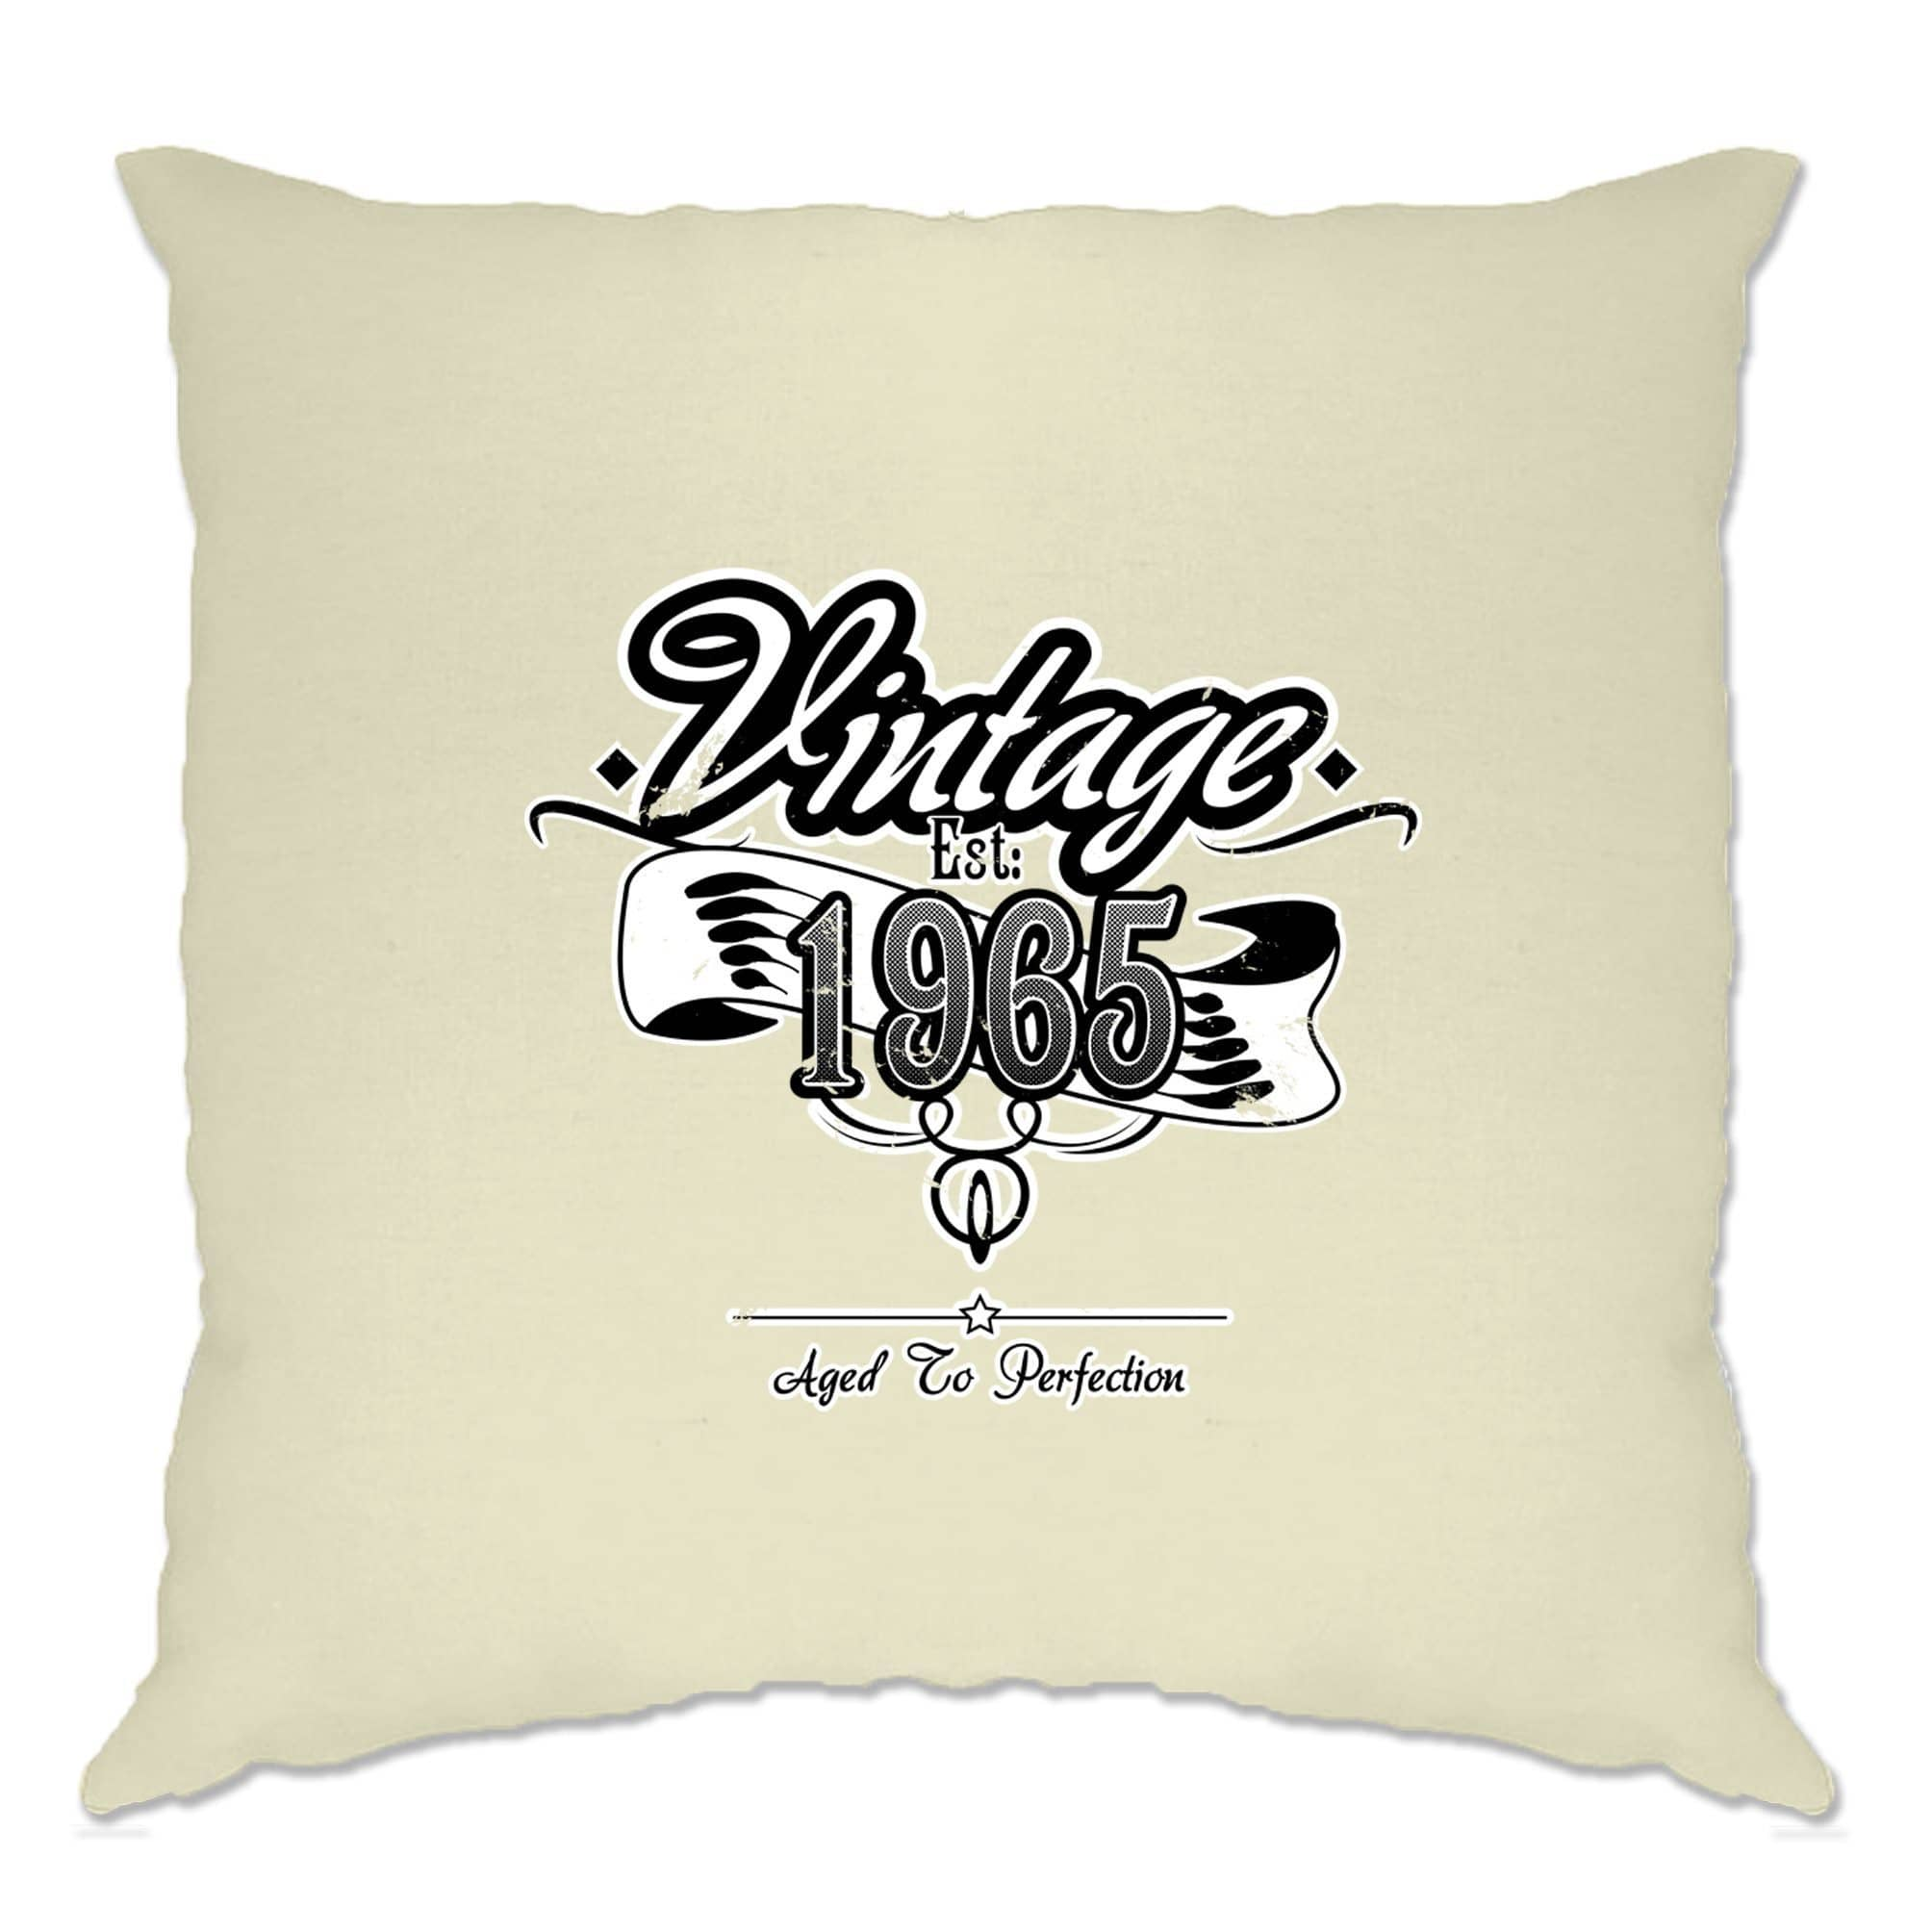 Birthday Cushion Cover Vintage Est. 1965 Aged To Perfection